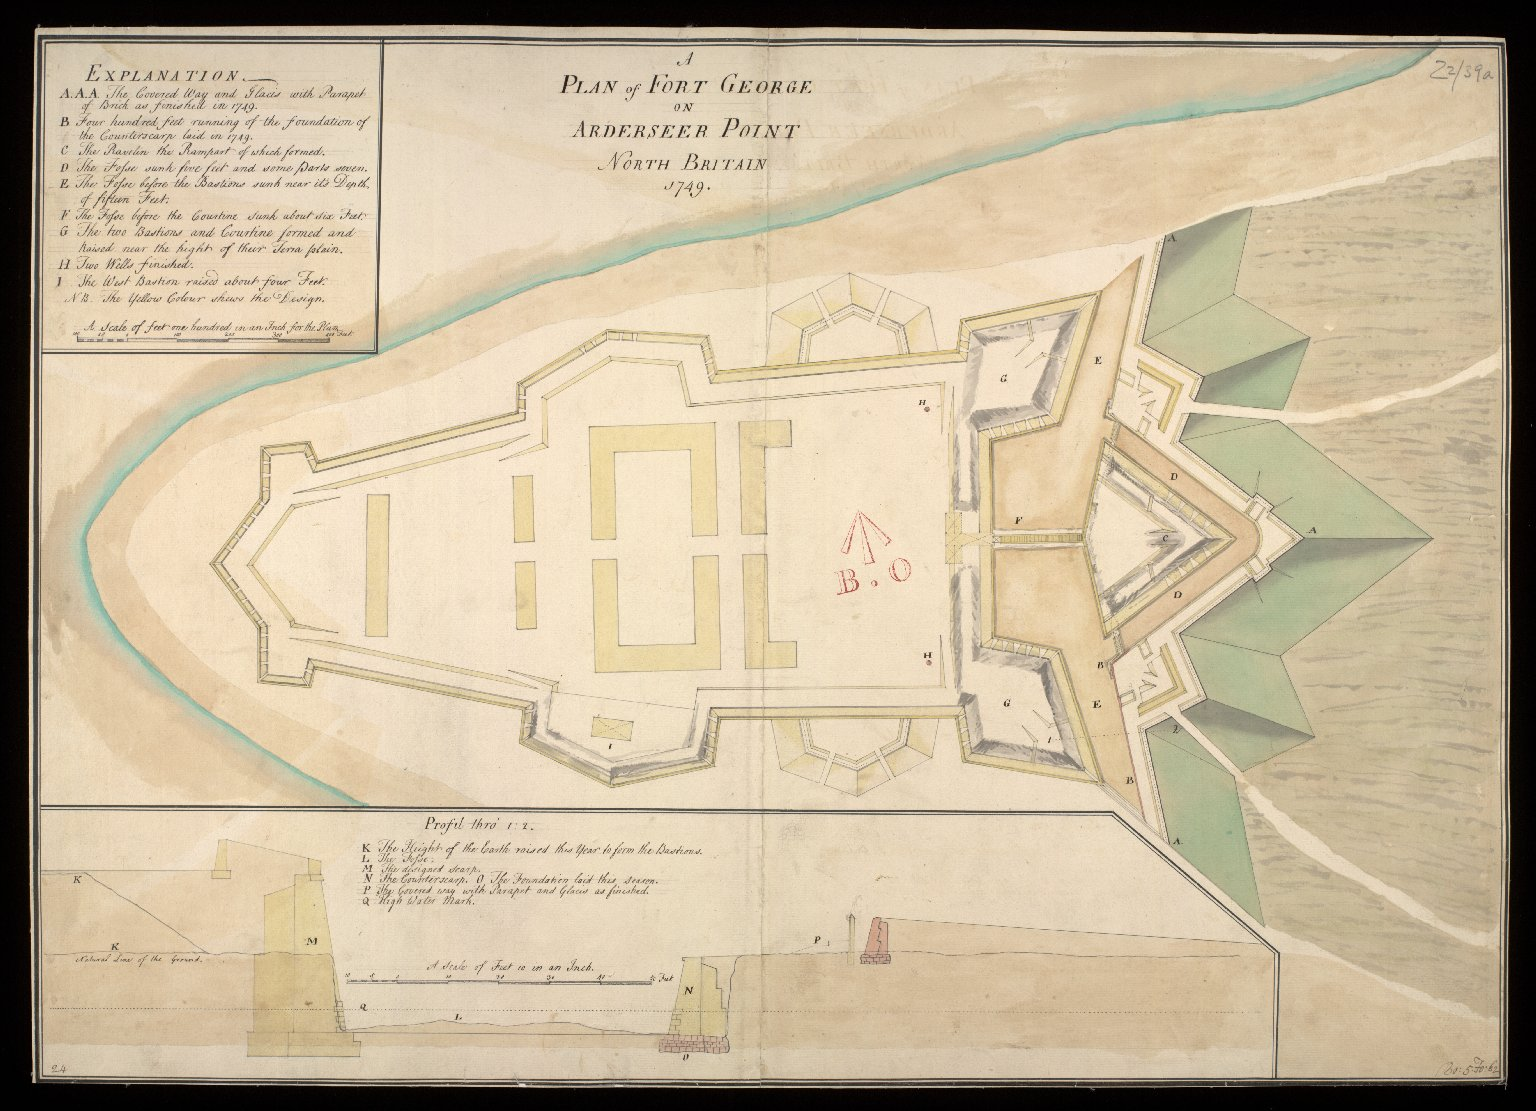 A Plan of Fort George on Arderseer [i.e. Ardersier] Point North Britain 1749 [1 of 1]